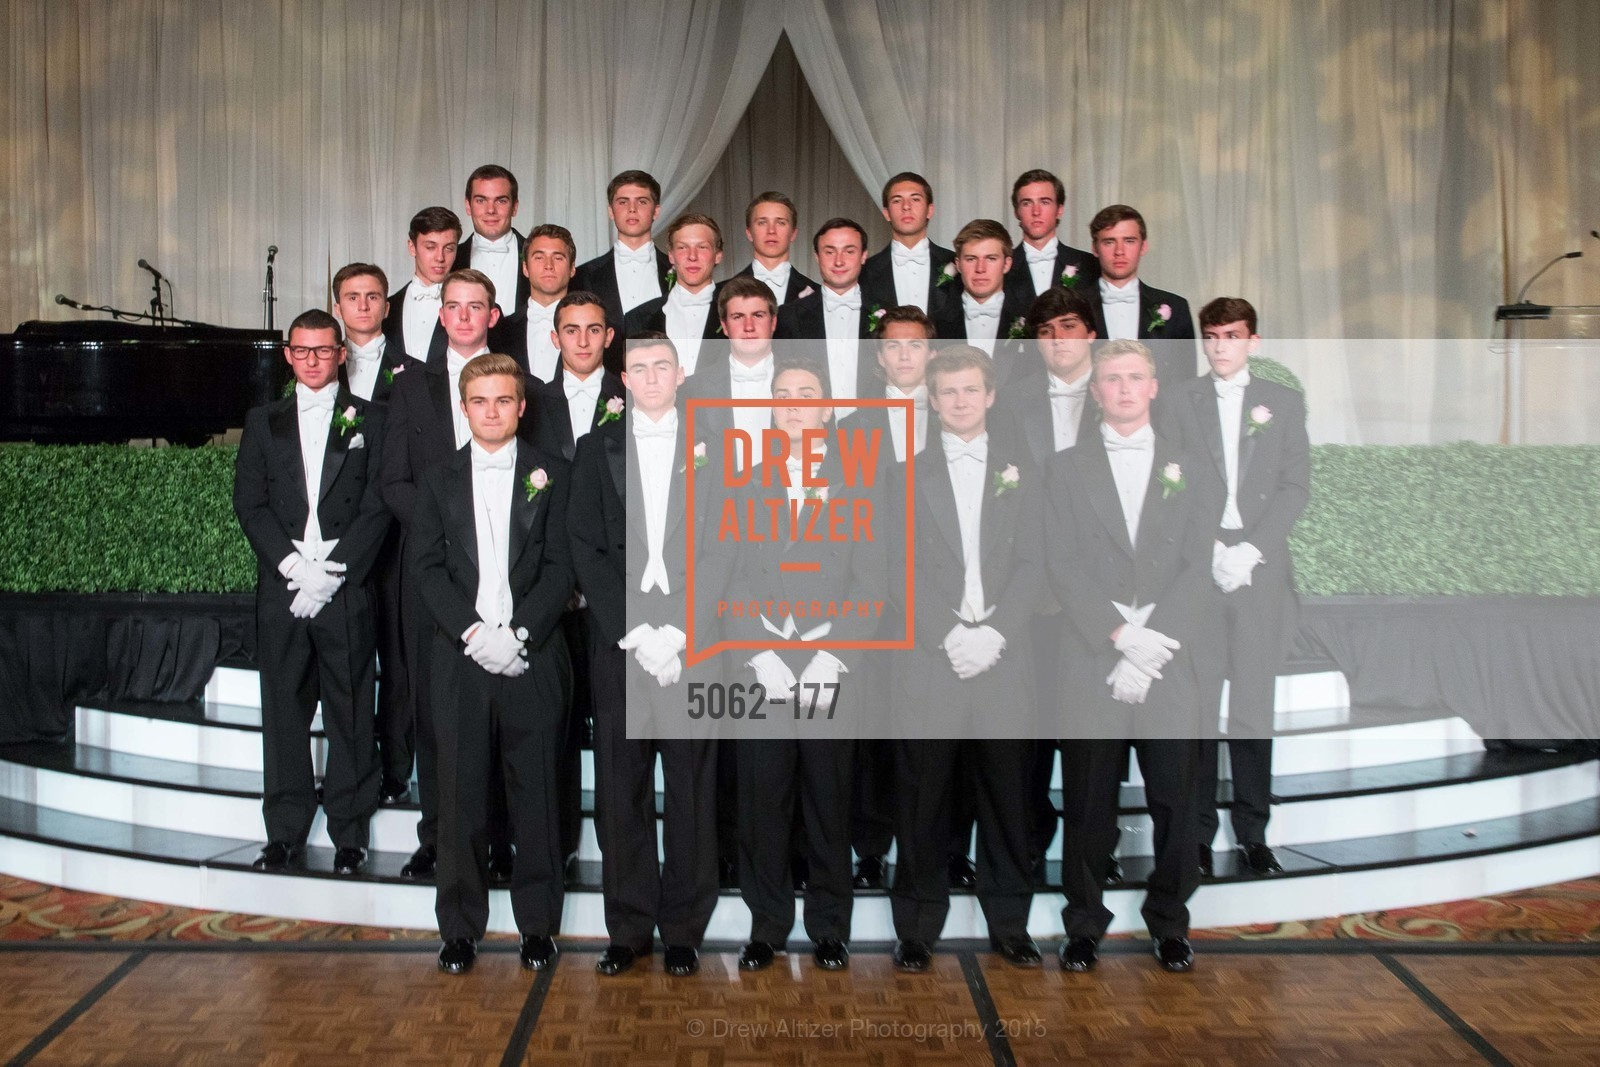 St ROW Henry Griffith Callender, Elias Morrison Schwartz, Kai Otto Fukami Vogel, TJ Polite, Luca Sullivan, 2nd ROW Parker Wyatt Silverman, Jack Andrew Kariotis, William Hibbard Dana II, Maxwell Tucker Brenner, John Bernard Travers, Connor Thomas King-Roberts, Michael Jeffrey King, Alexander James Douglas, 3rd ROW William Behnke Jr., Paul James Campana, Michael Grinnell II, Luke Rosser Edwards, Kevin Michael Mannix II, Daniel Conte, Angelo Matteo Sangiacomo, Joseph Jennison Ladd, Brendan William Dunlap, The 2015 San Francisco Debutante Ball, The Westin St. Francis San Francisco Union Square. 335 Powell St, June 20th, 2015,Drew Altizer, Drew Altizer Photography, full-service event agency, private events, San Francisco photographer, photographer California